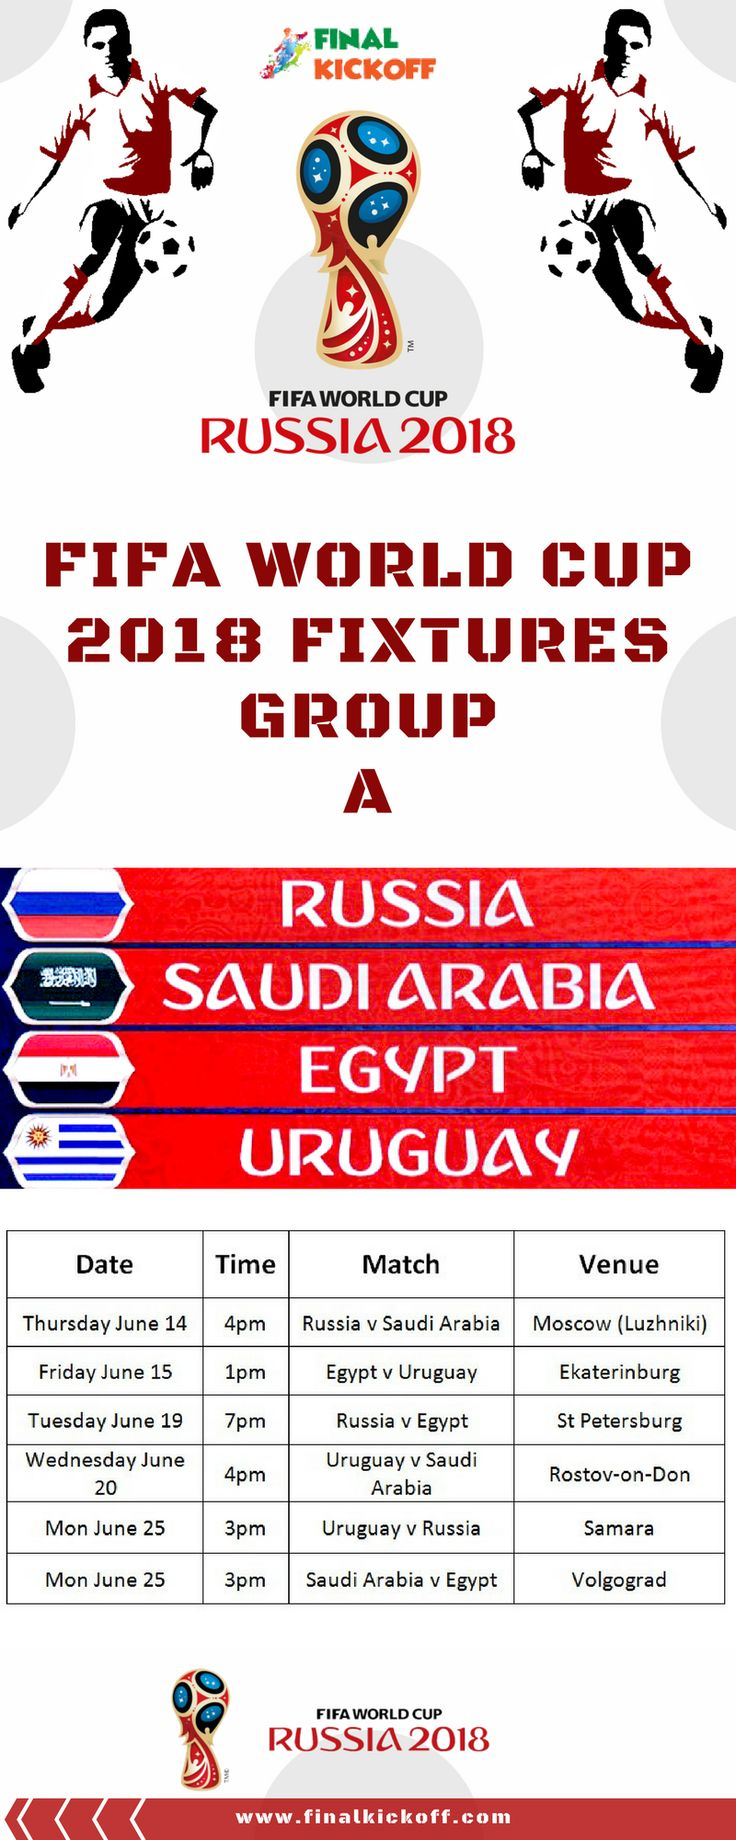 FIFA World Cup 2018 Match Schedule Group A